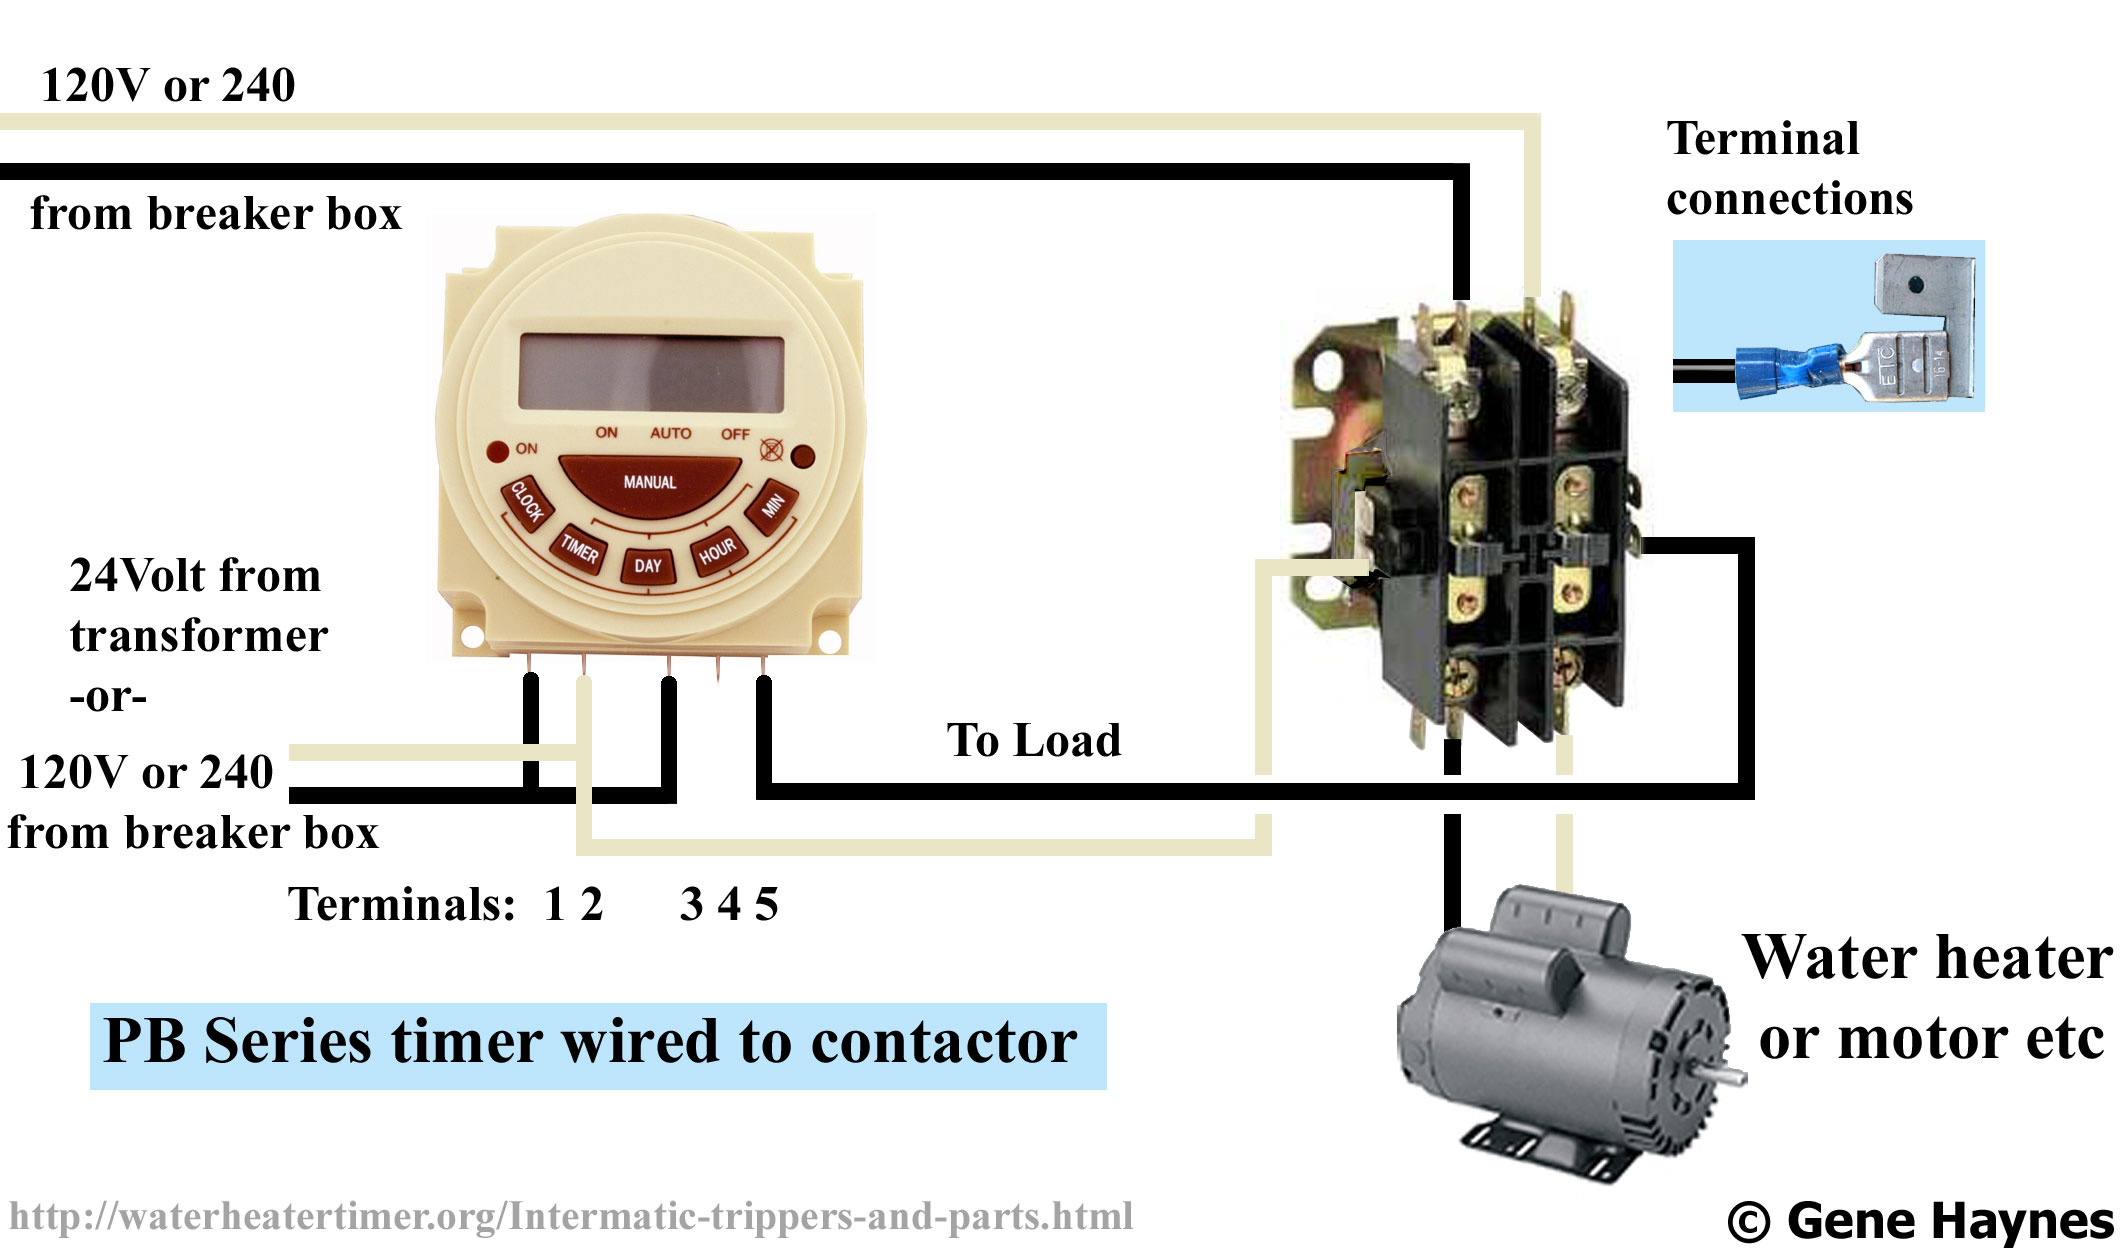 PB 300 series timer wiring motor large contactors 120v contactor wiring diagram at webbmarketing.co